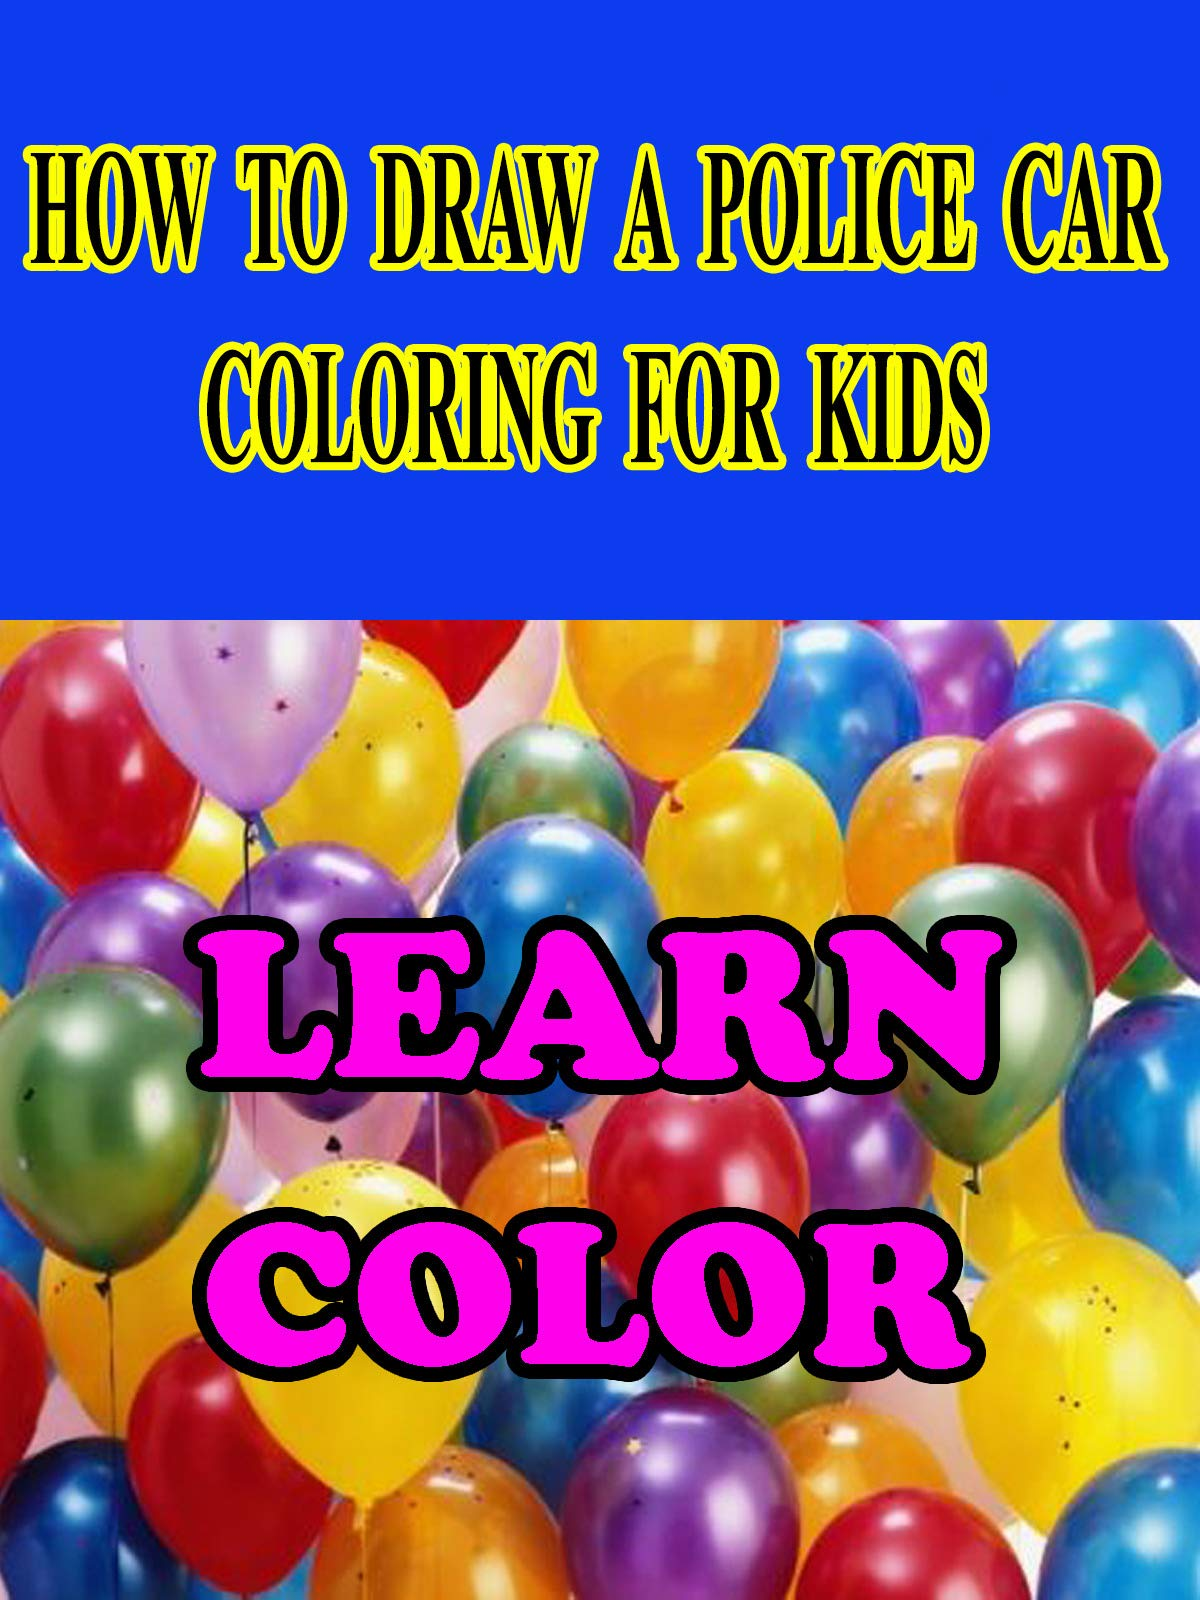 How To Draw a Police Car - Coloring for Kids - Learn Color on Amazon Prime Video UK